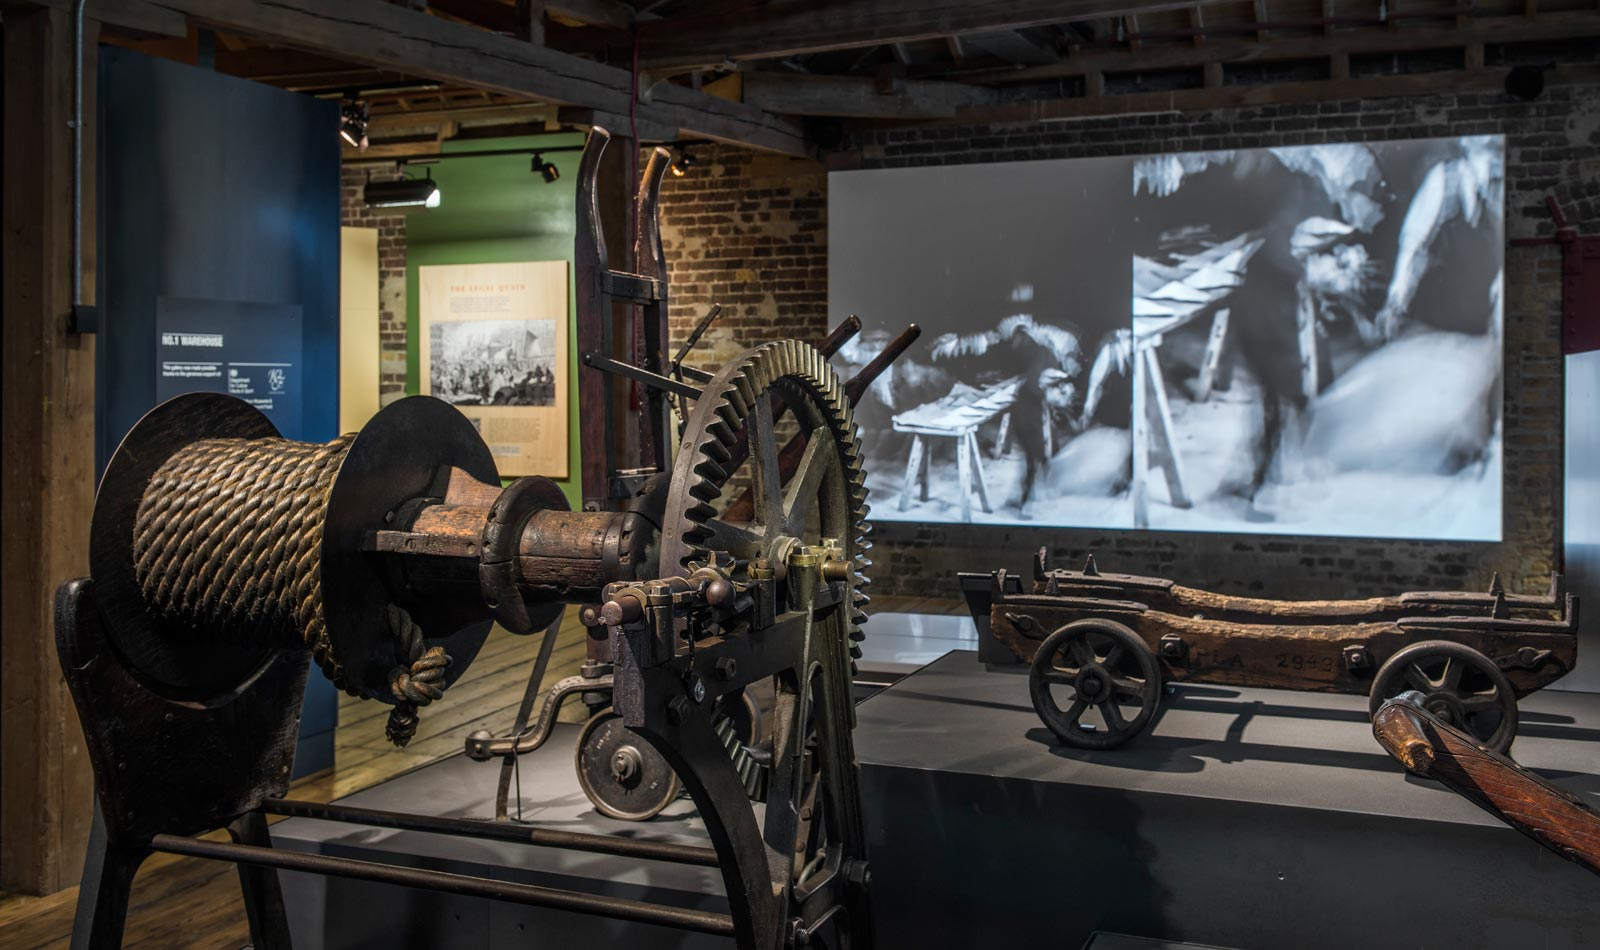 Winch and film displayed in the No. 1 Warehouse gallery.